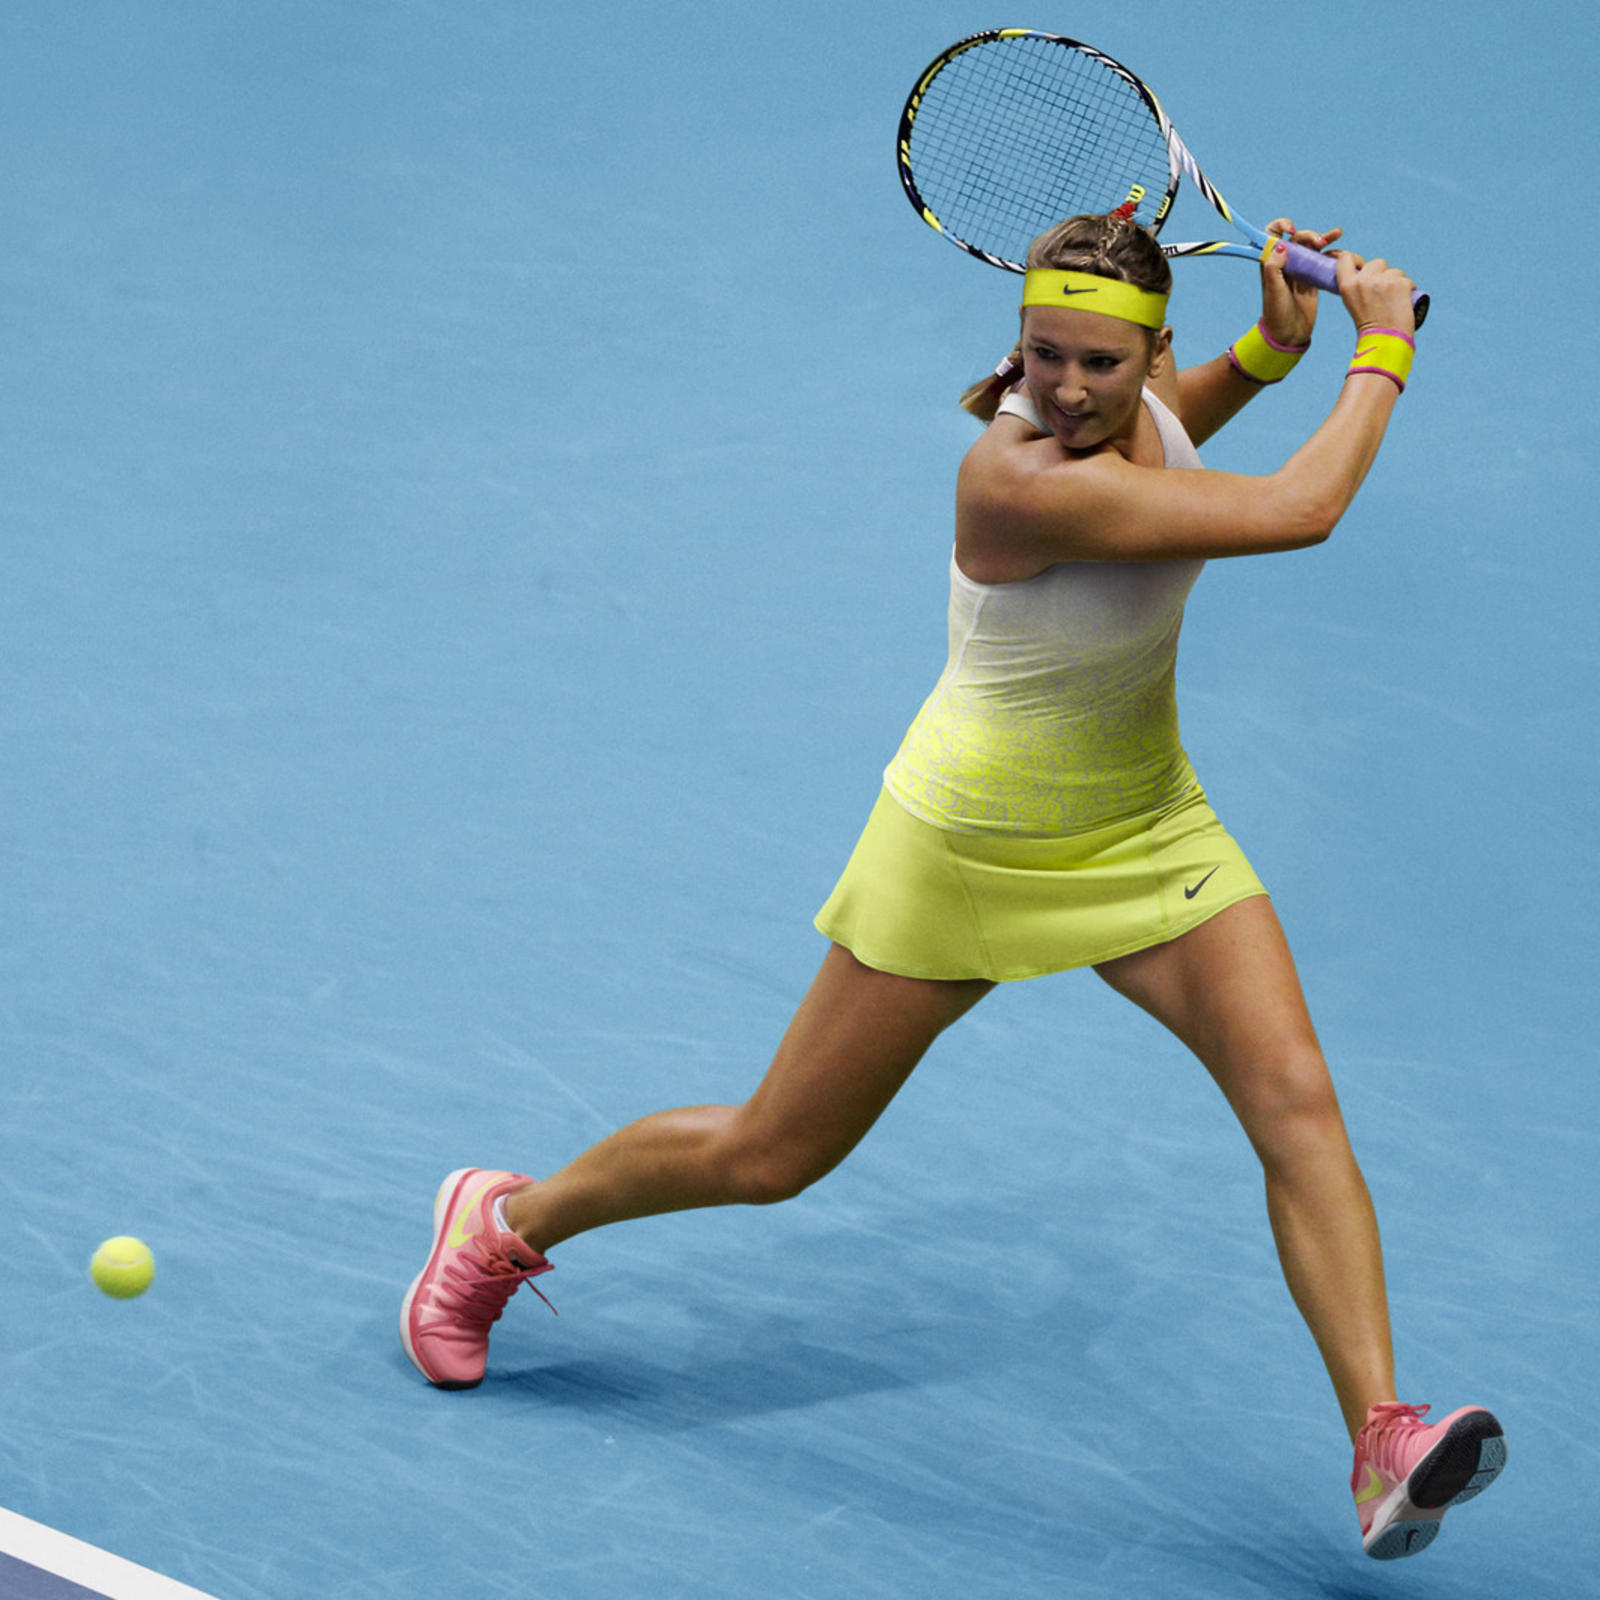 azarenka australian open 2015 dress outfit nike tennis